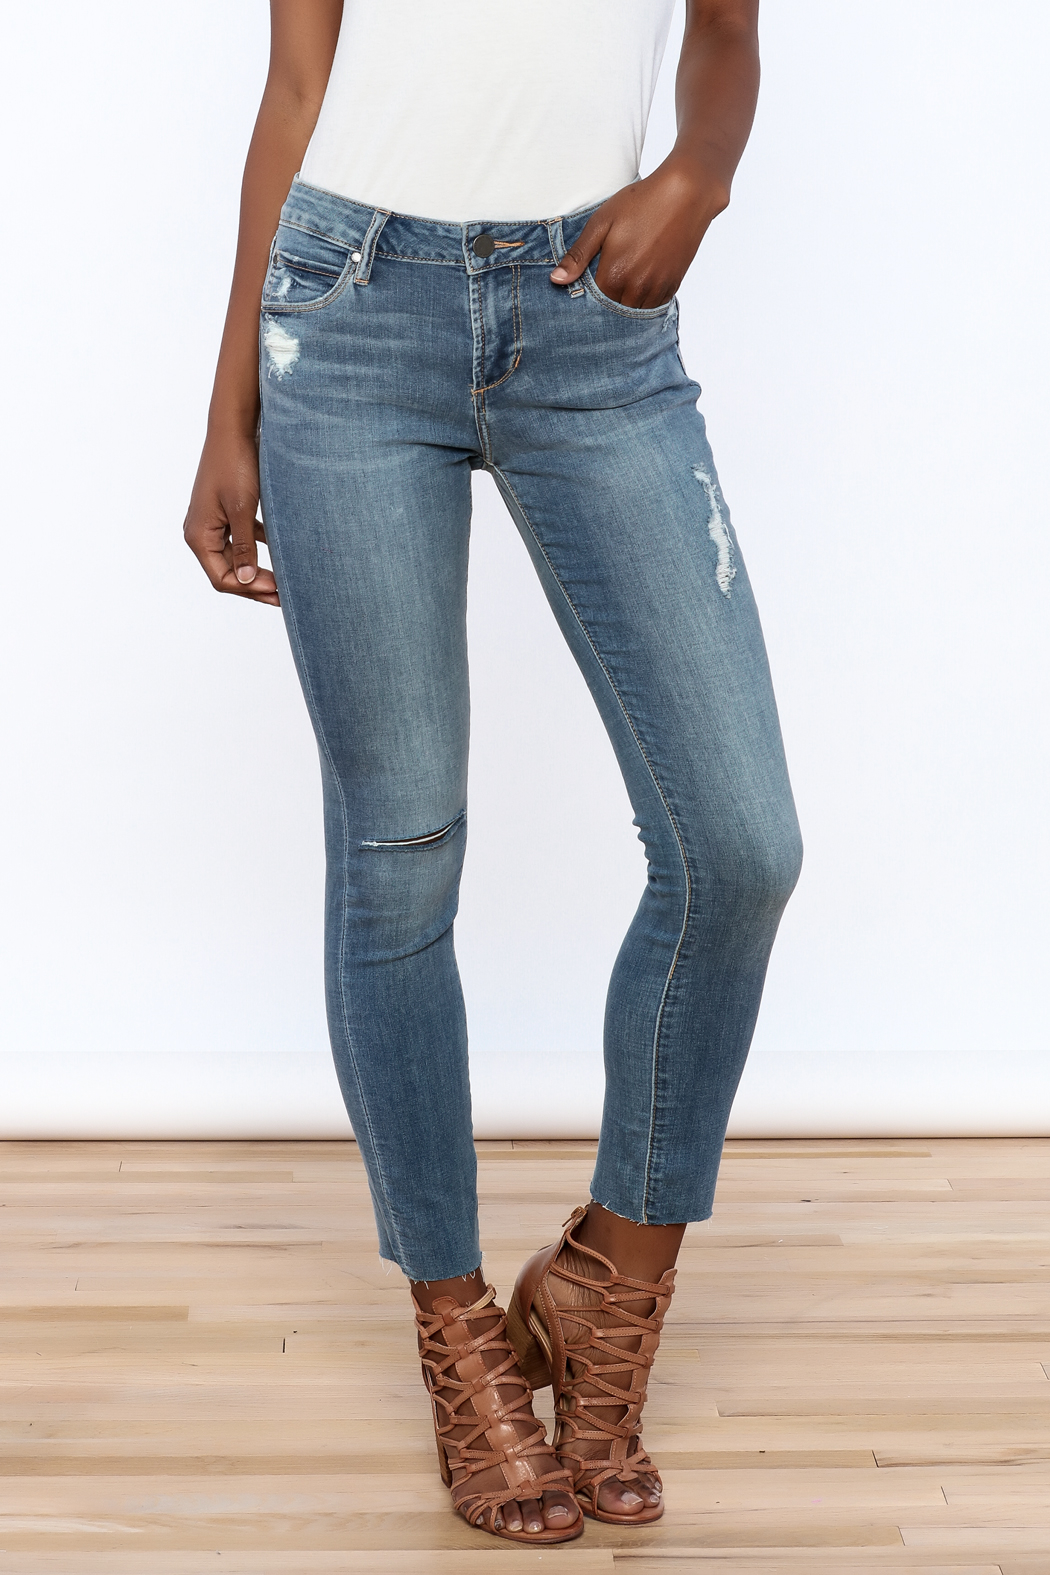 Articles of Society Dark Denim Distressed Jeans - Front Cropped Image